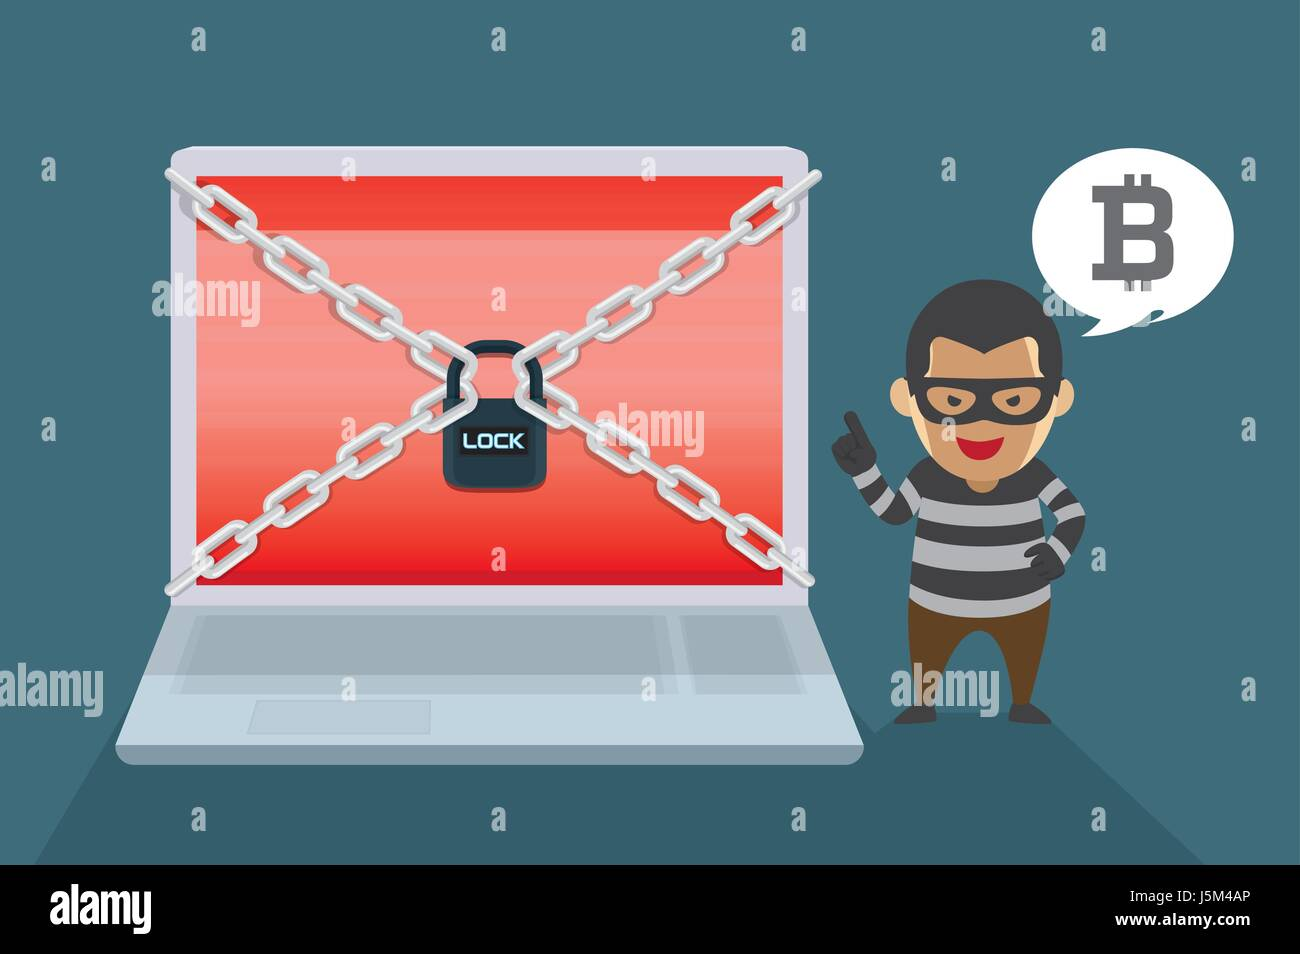 Hacker demand Bitcoin payments to restore computer systems. Illustration about Wanna Cry Ransomware Virus. - Stock Vector